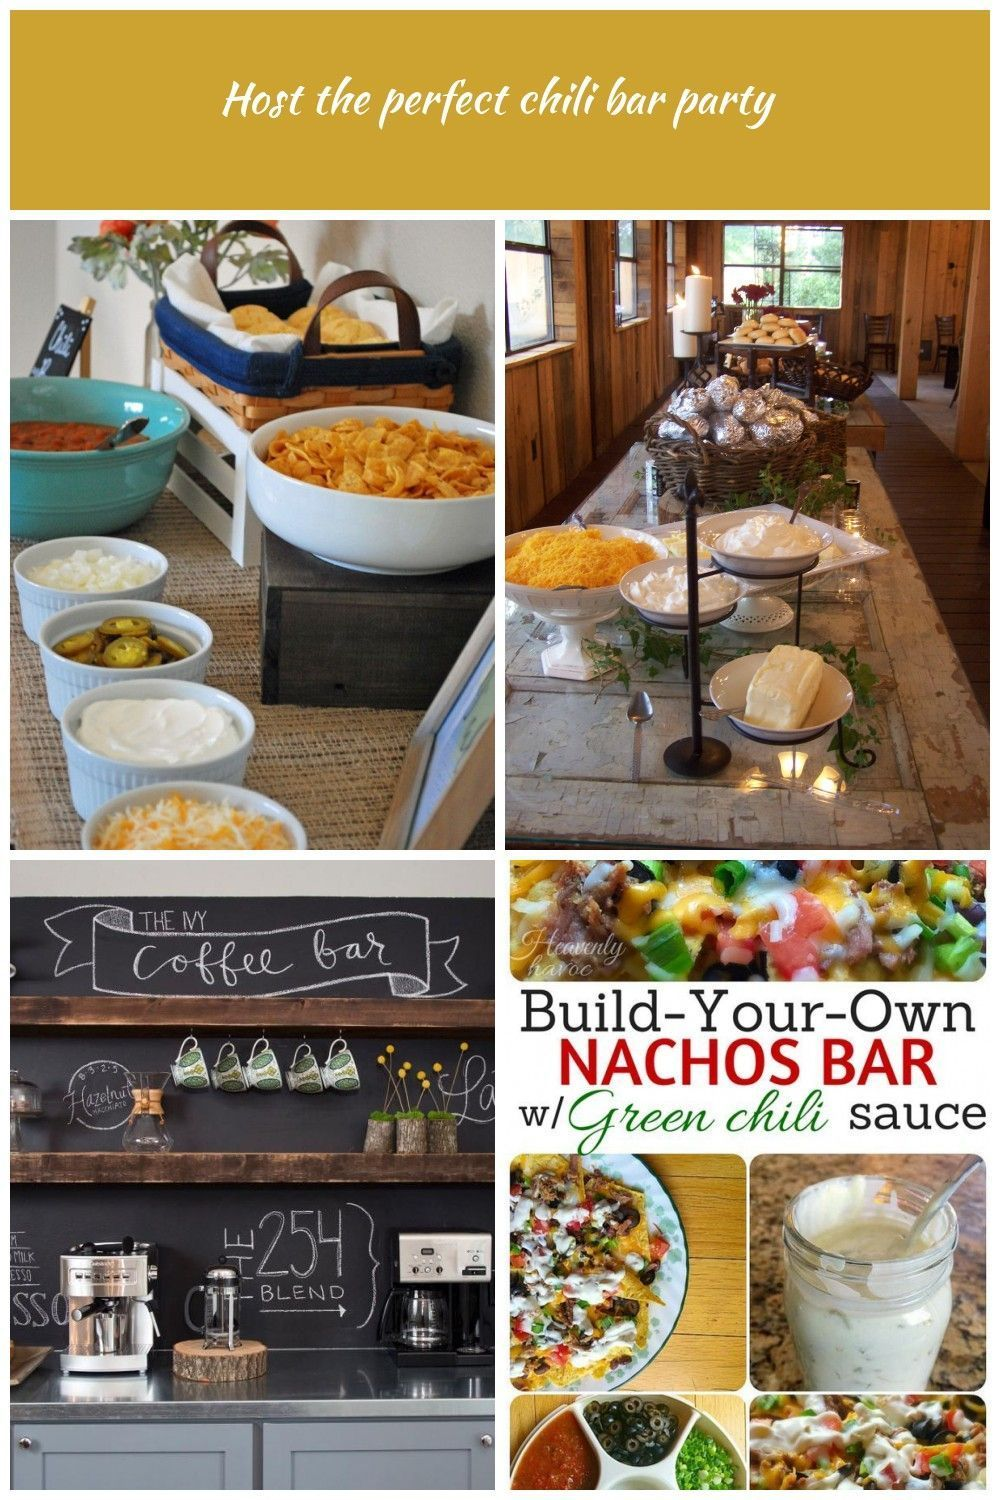 How to host the perfect fall chili bar party with awesome ideas for toppings and a cute Happy Fall Y'all Free printable to decorate your tablescape. | Chili Bar Ideas| Free Printables | #sp #ProgressChili #NationalChiliMonth @progresso food bar Host the perfect chili bar party #chilibar How to host the perfect fall chili bar party with awesome ideas for toppings and a cute Happy Fall Y'all Free printable to decorate your tablescape. | Chili Bar Ideas| Free Printables | #sp #ProgressChili #Nati #chilibar